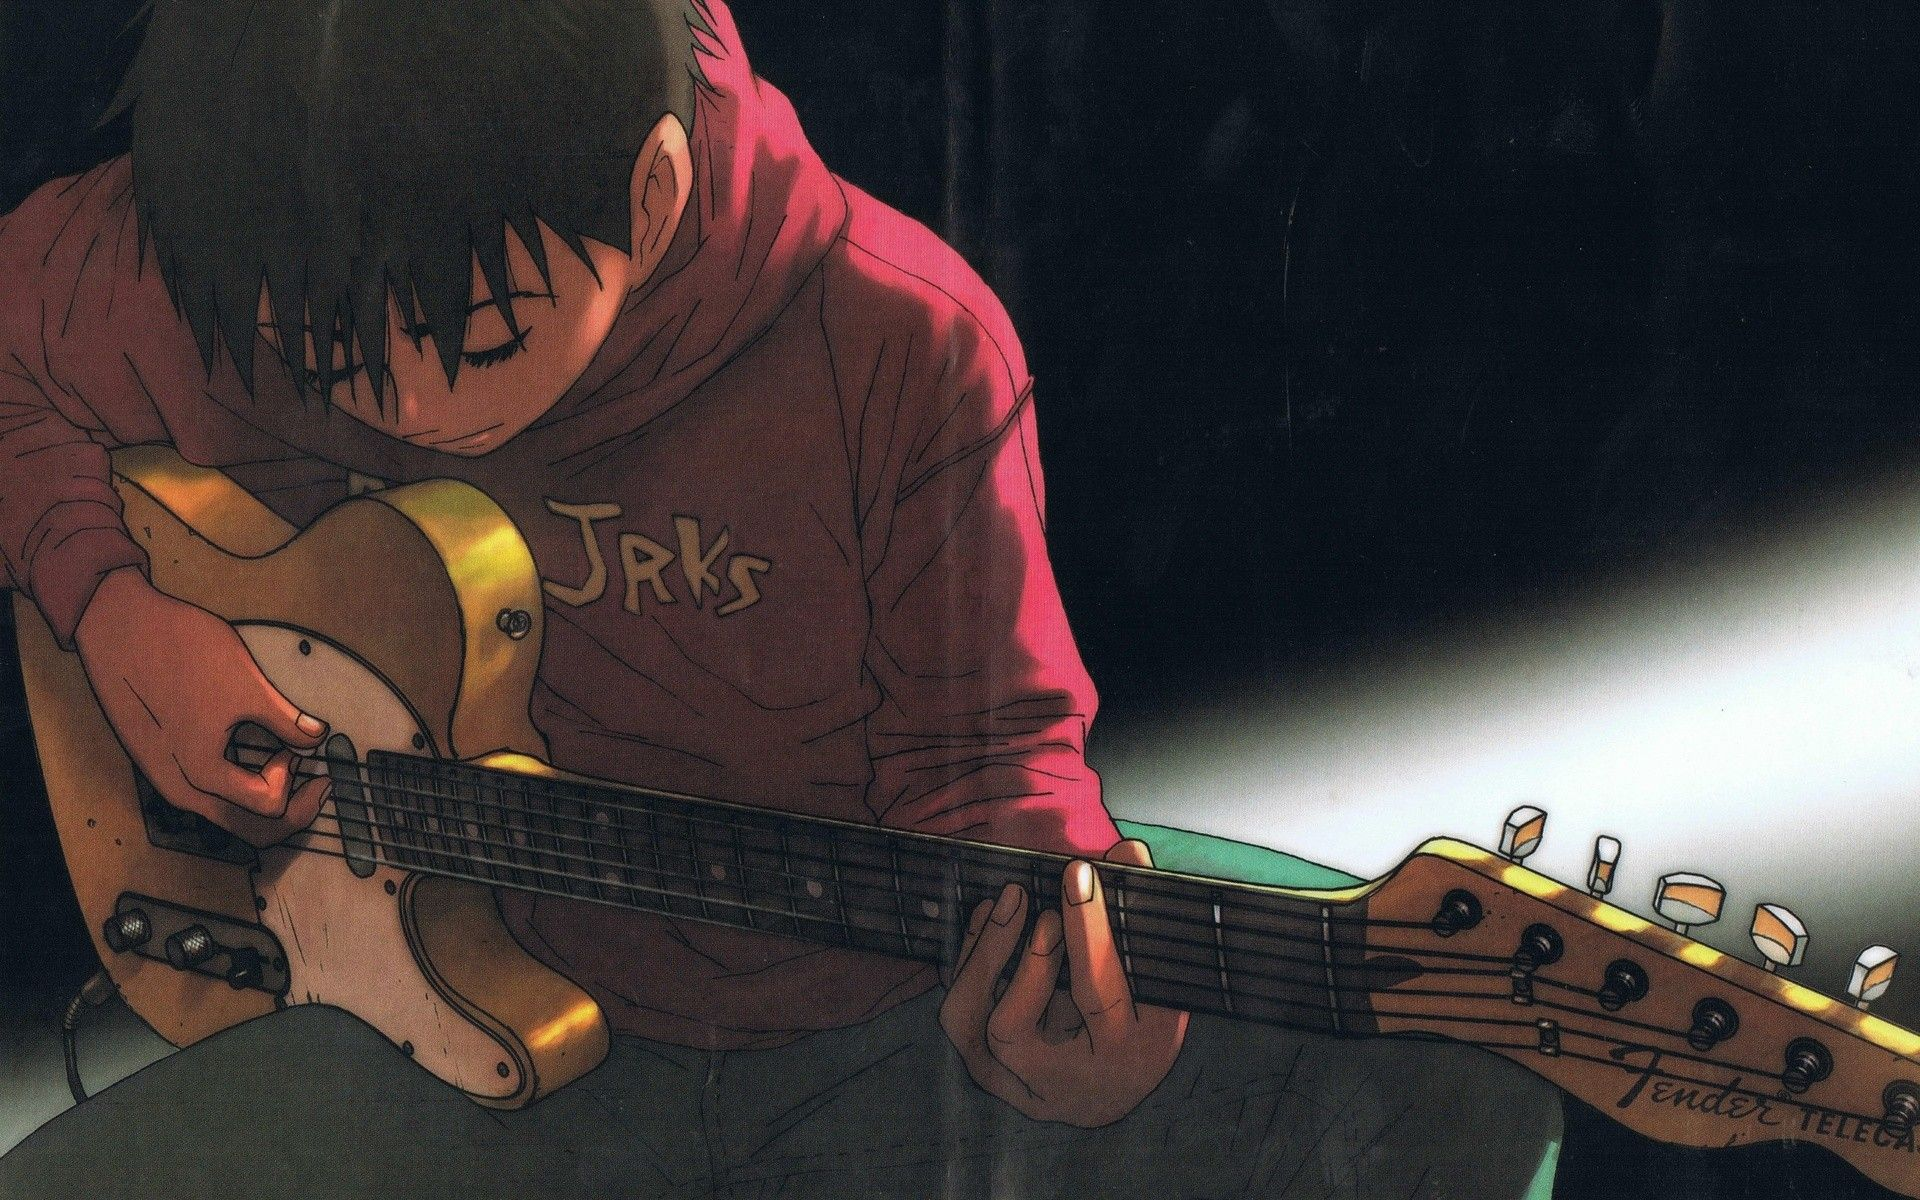 Pin By Hel Suy On Art Guitar Illustration Cats Art Drawing Anime